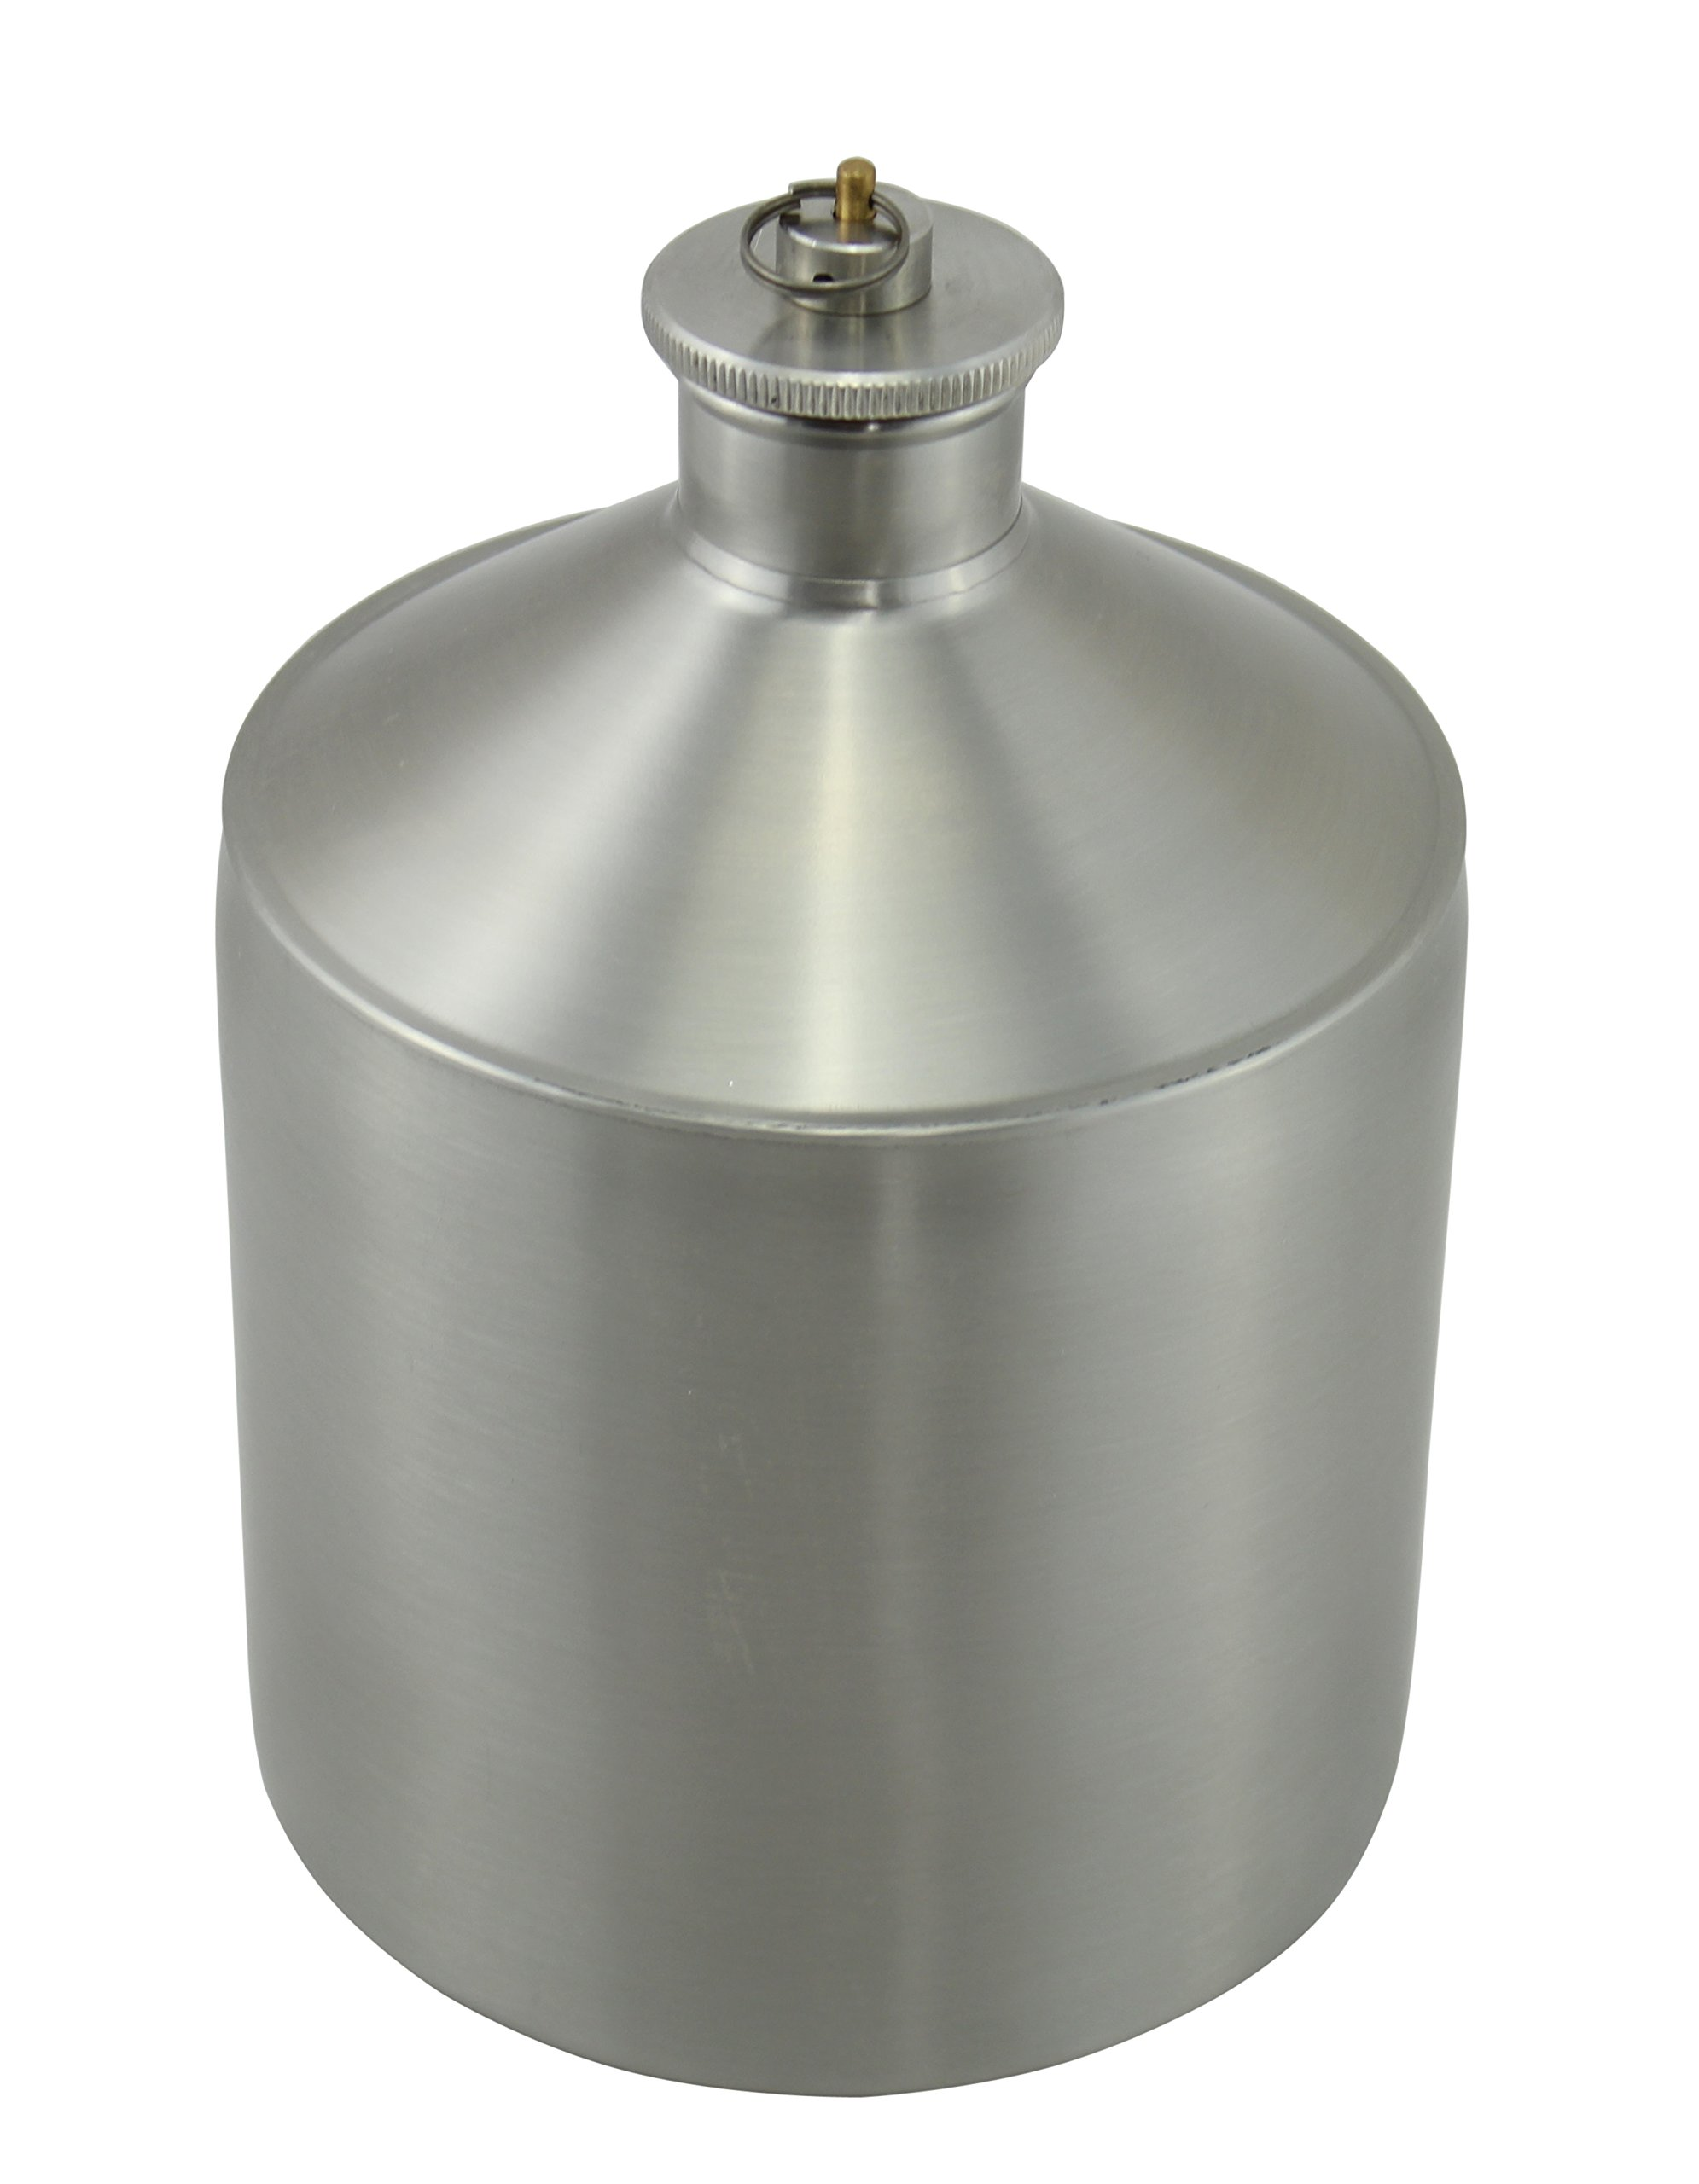 Stainless Steel Carboy Fermenter by The Weekend Brewer (64oz) by The Weekend Brewer